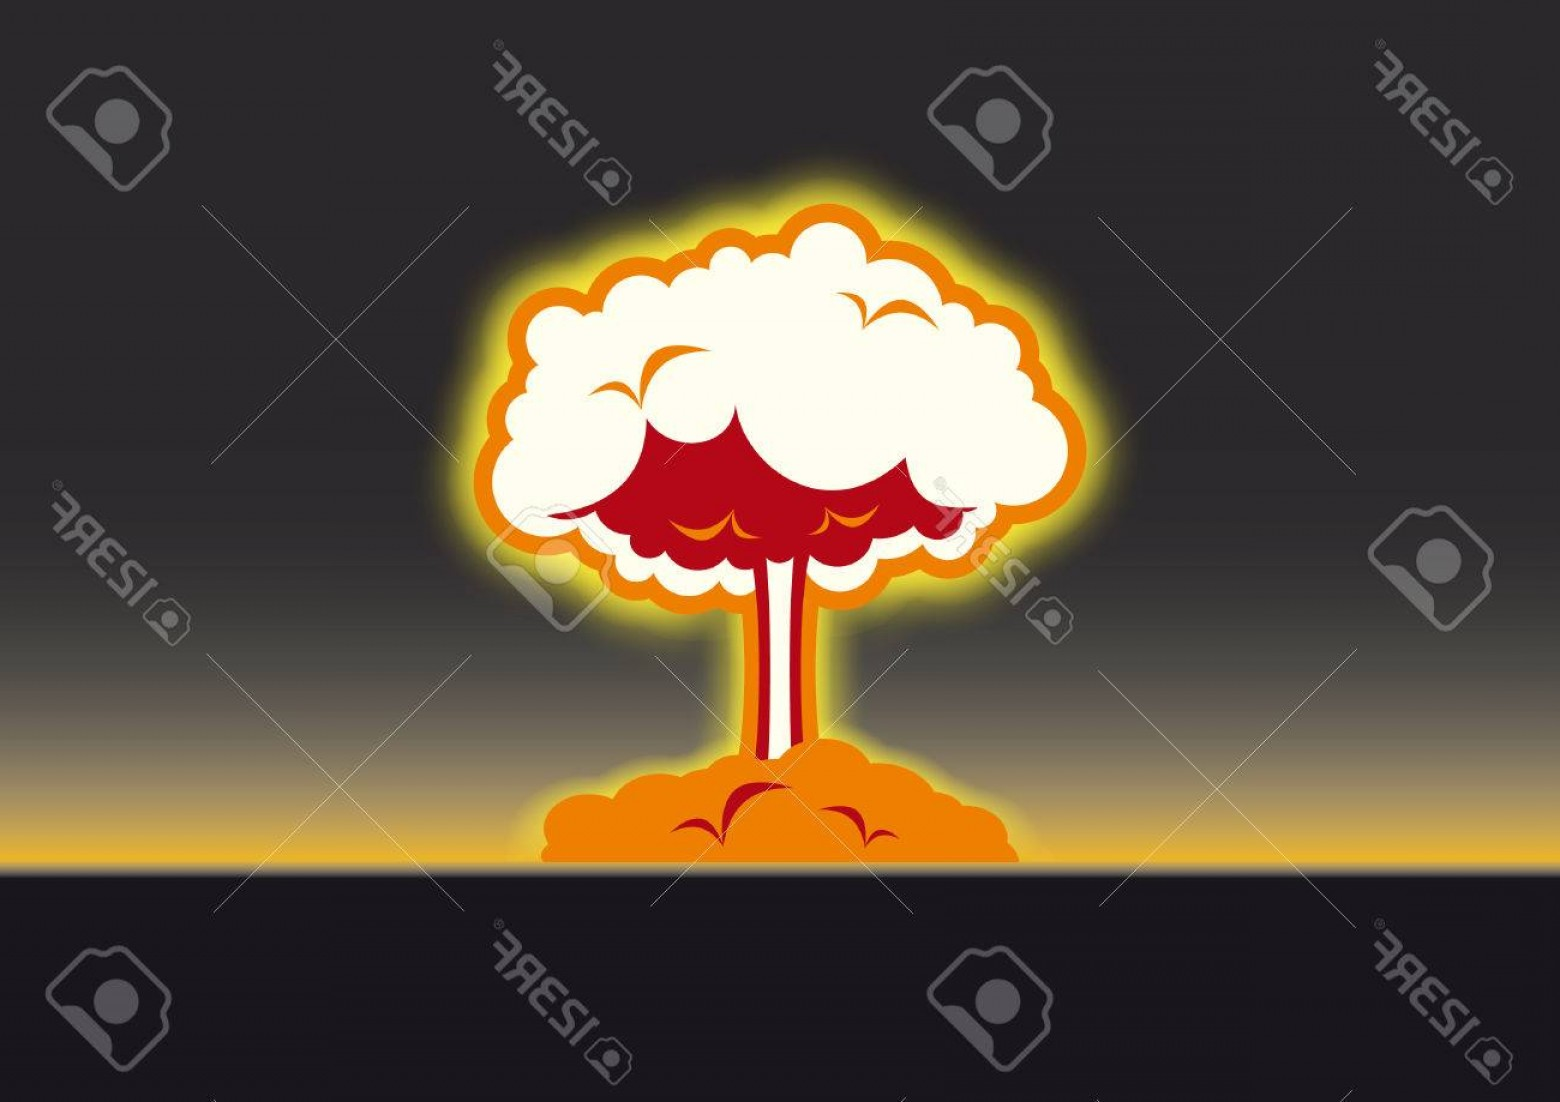 Atomic Vector Coud: Photostock Vector Nuclear Explosion Vector Black Background With Atomic Mushroom